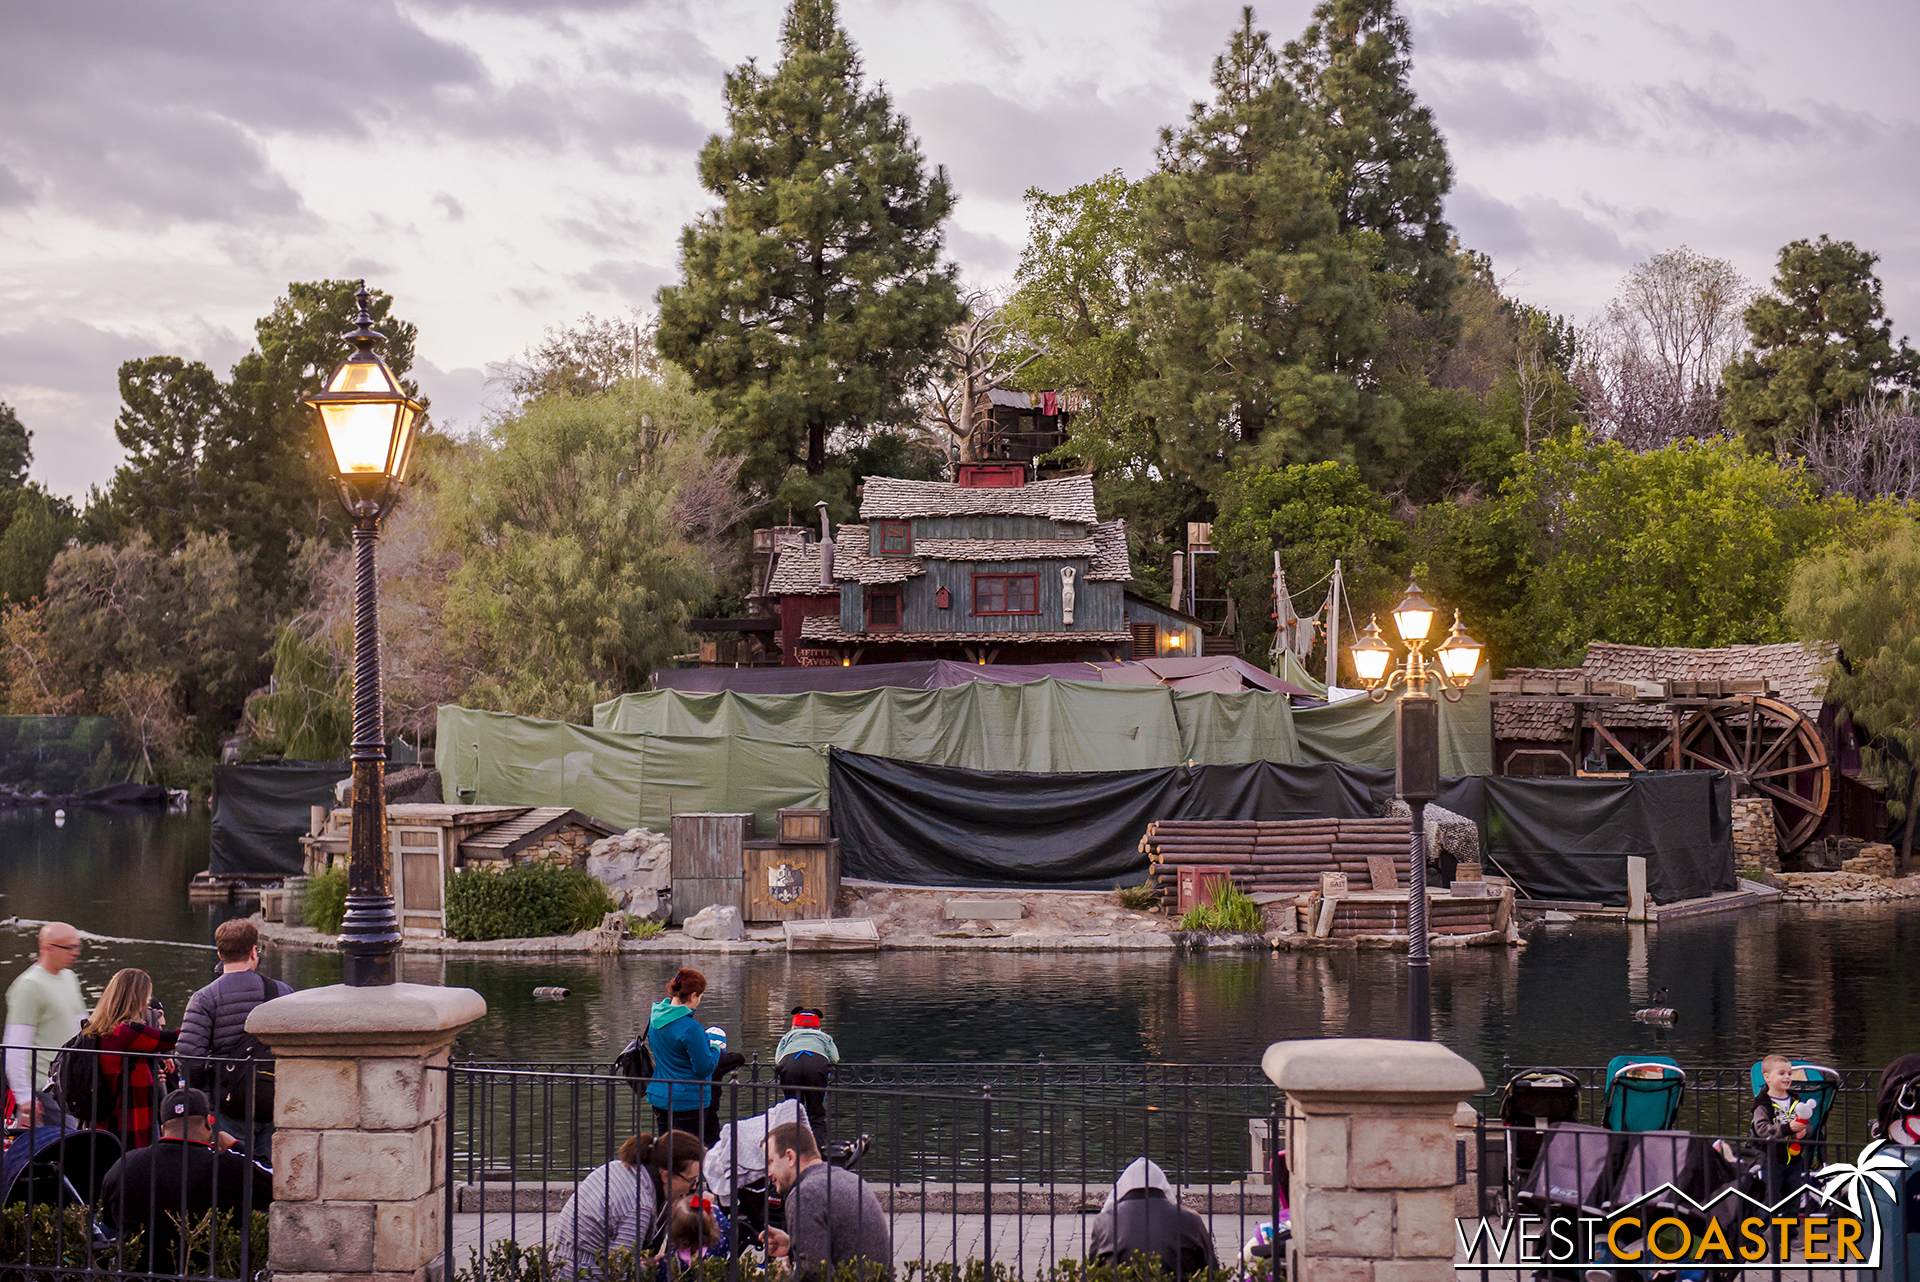 Curiously, tarps are up around the front of Tom Sawyer's Island now, even though they weren't when the building facades were being painted.